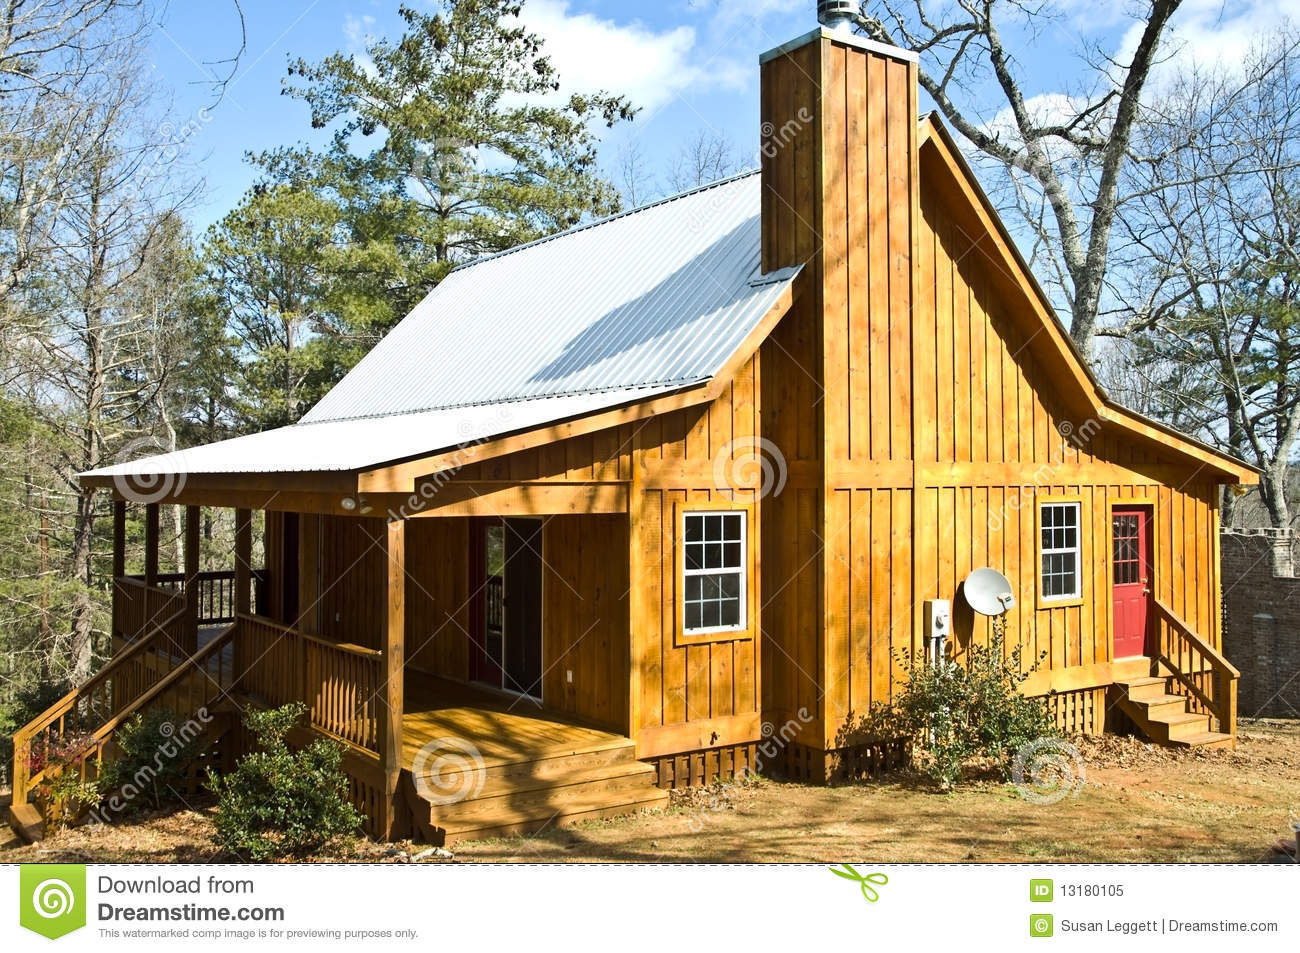 Wooden house with tin roof royalty free stock photo for Tin roof house designs